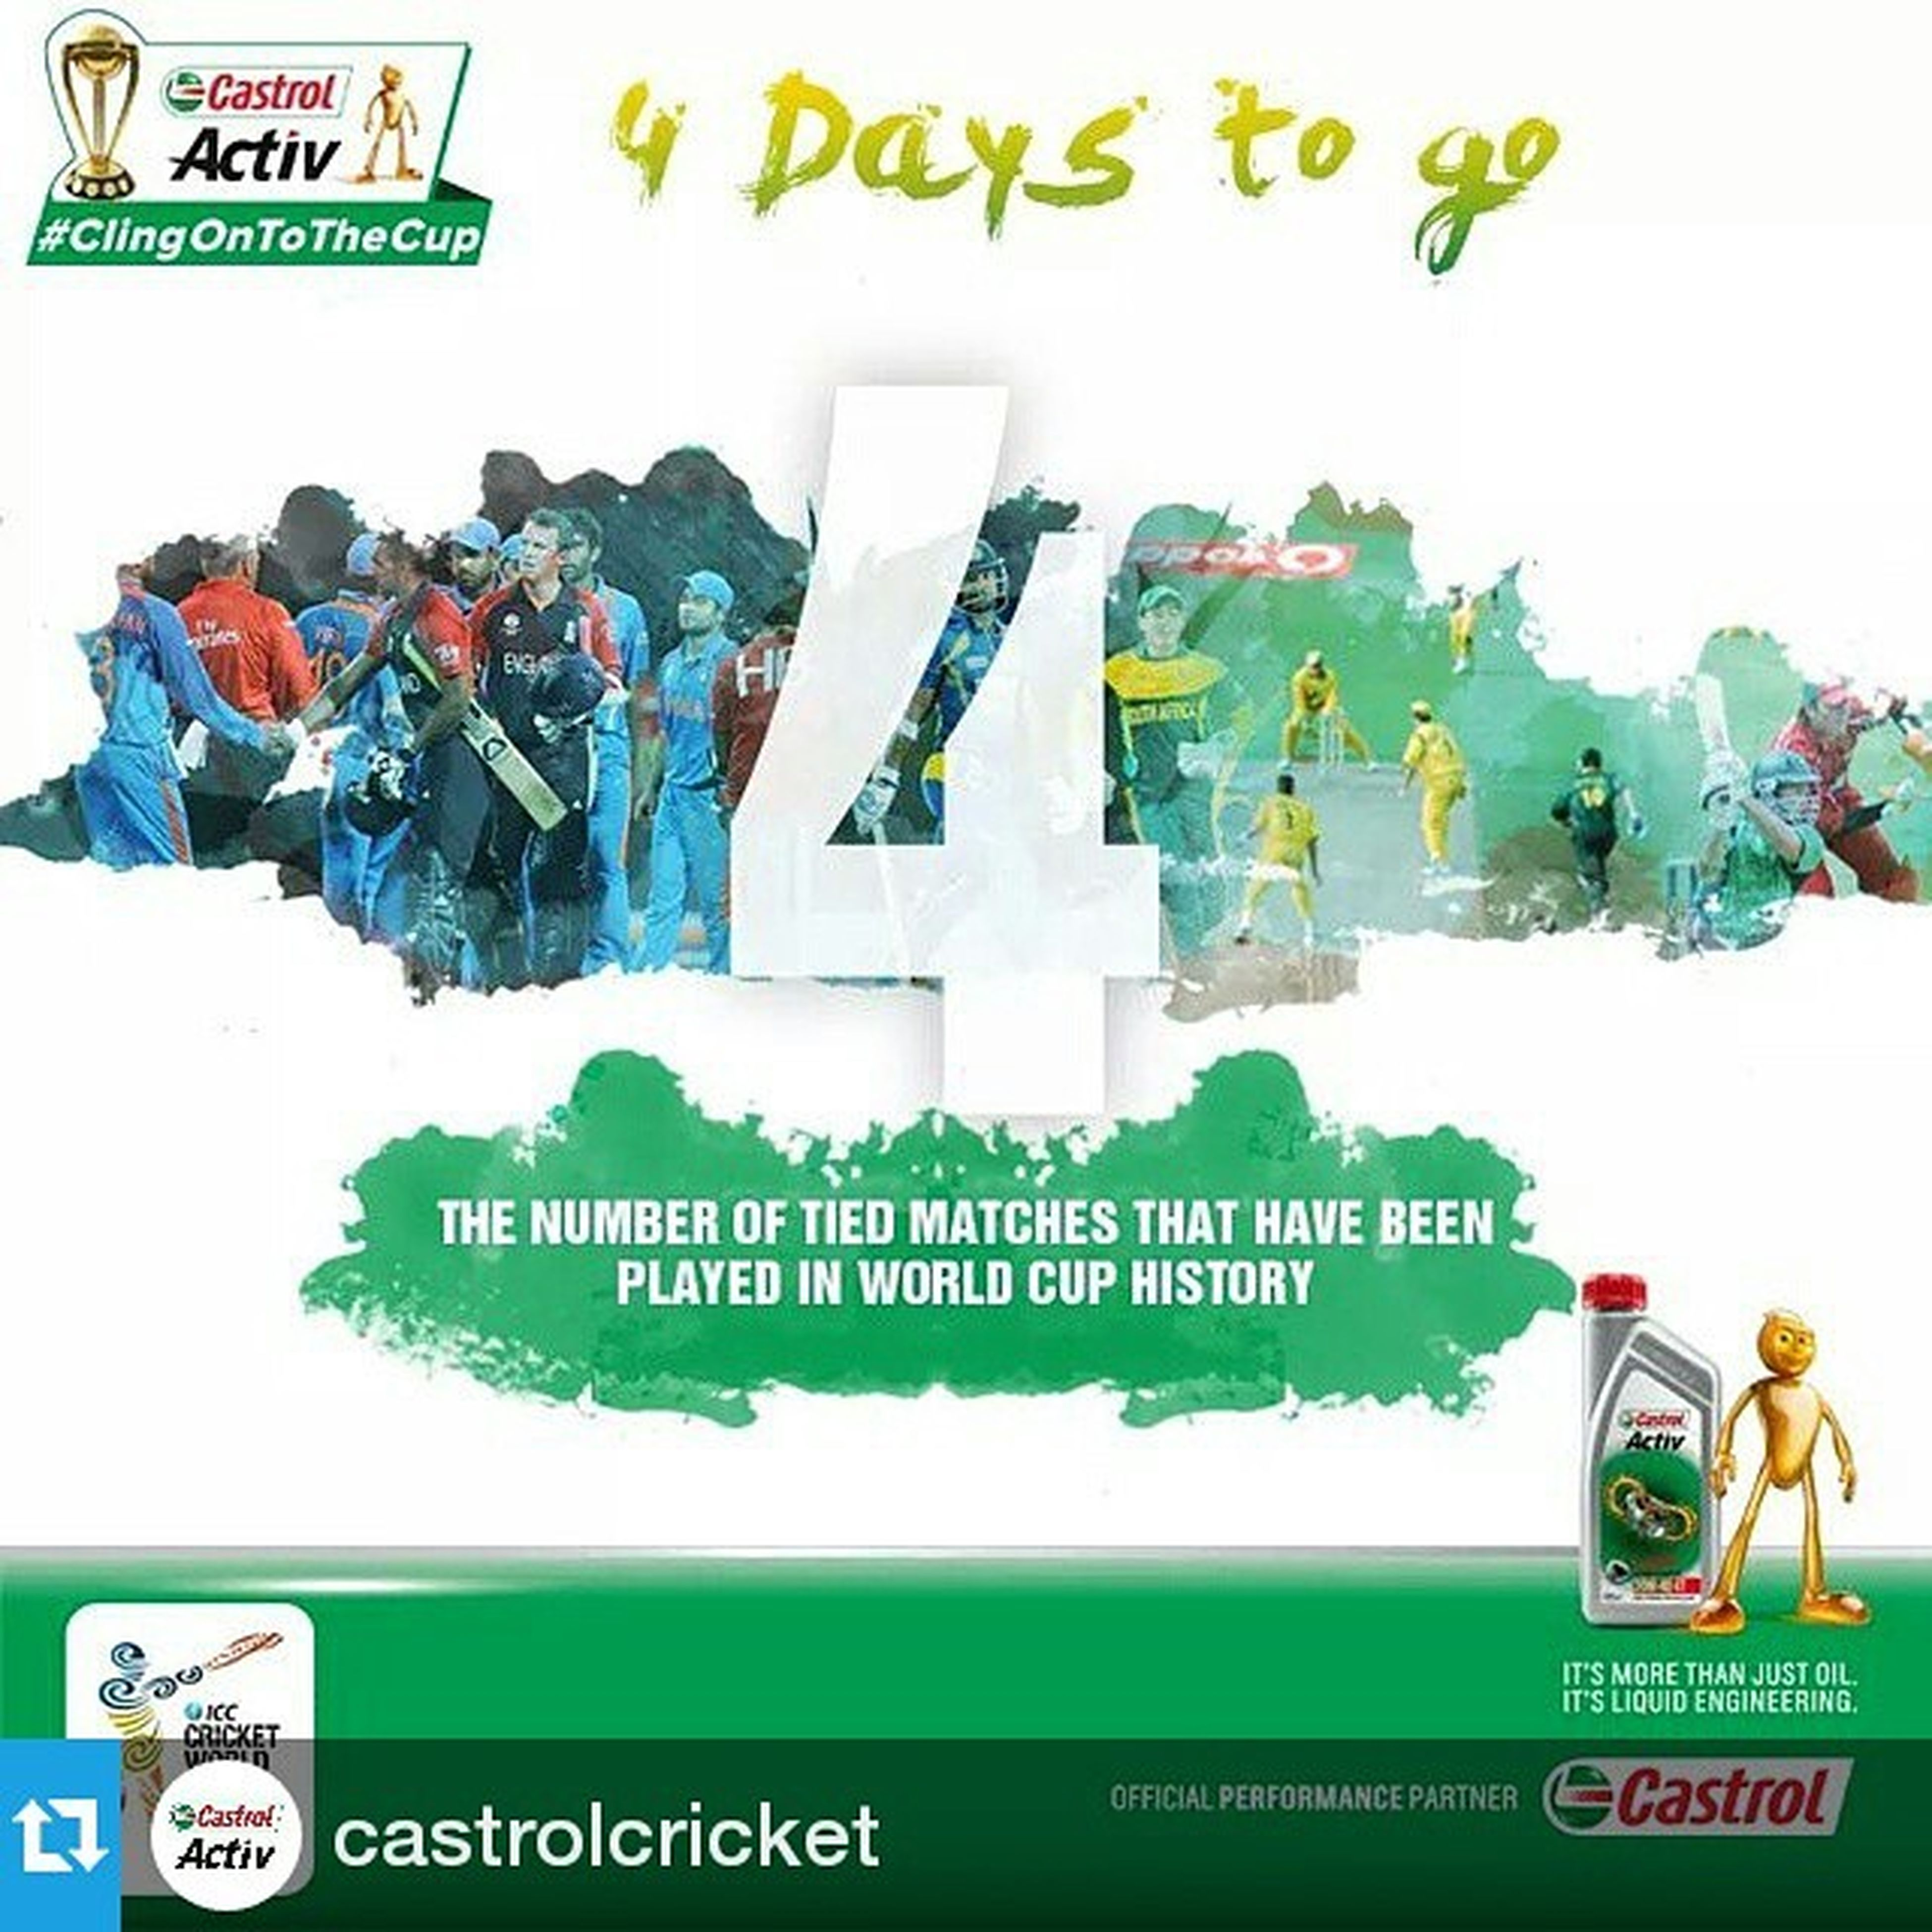 Repost @castrolcricket ・・・ South Africa have been involved in two tied matches in World Cup history and were knocked out of the tournament on both occasions. Can their luck change this time around? ClingOnToTheCup Cricket CricketFanatics InstaCricket India Zimbabwe SouthAfrica Australia Ireland SriLanka Countdown CWC2015